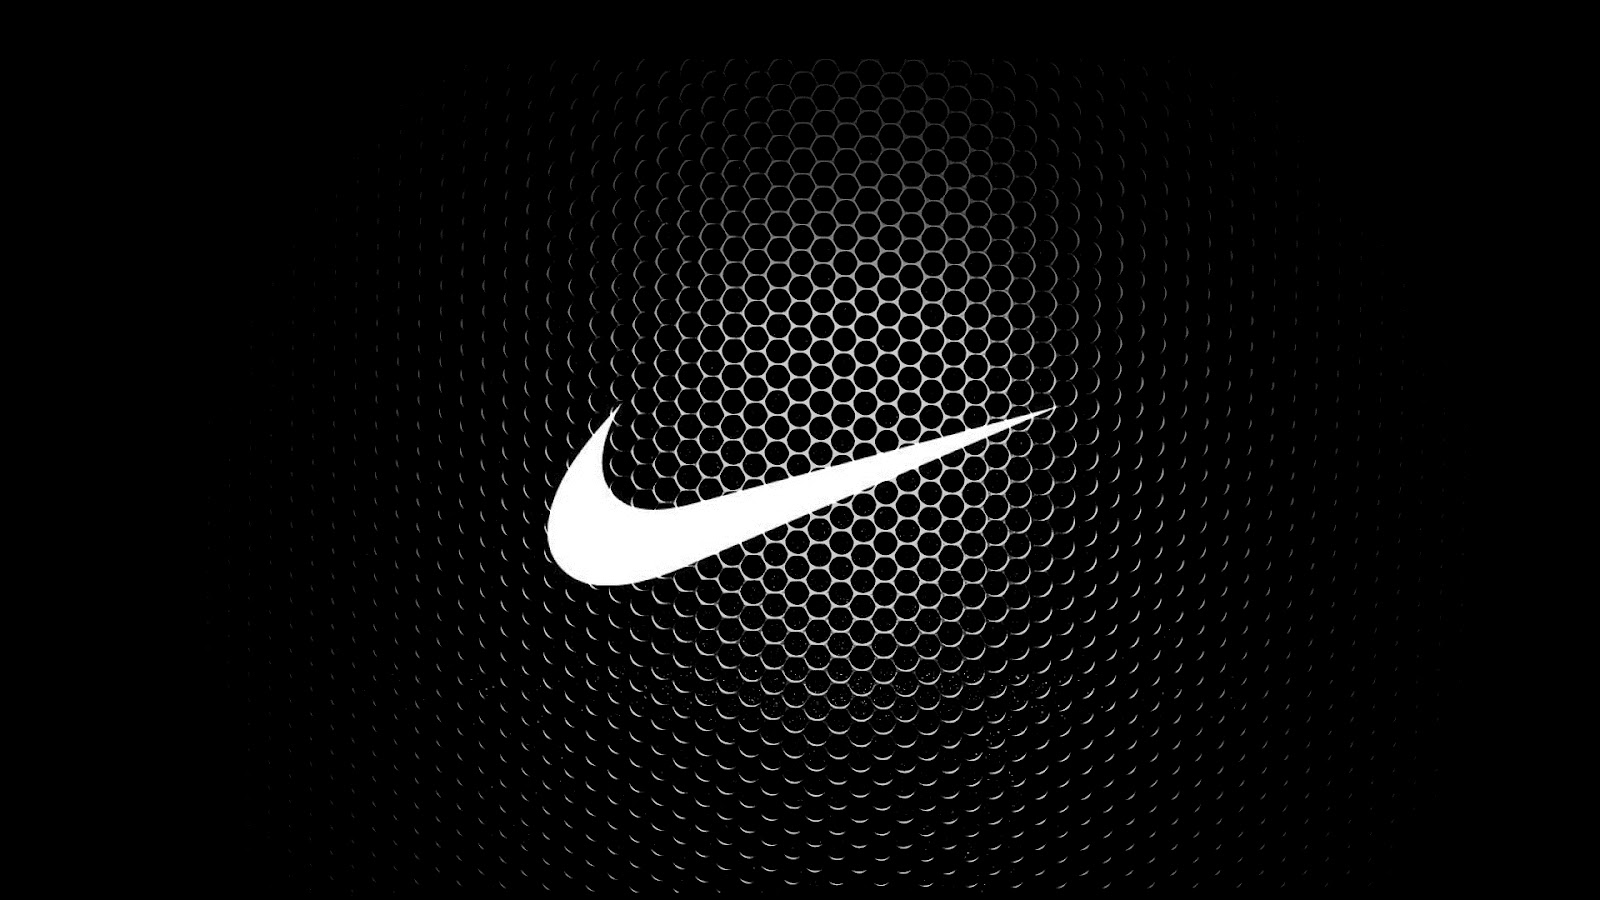 Nike Wallpaper Black 1600x900